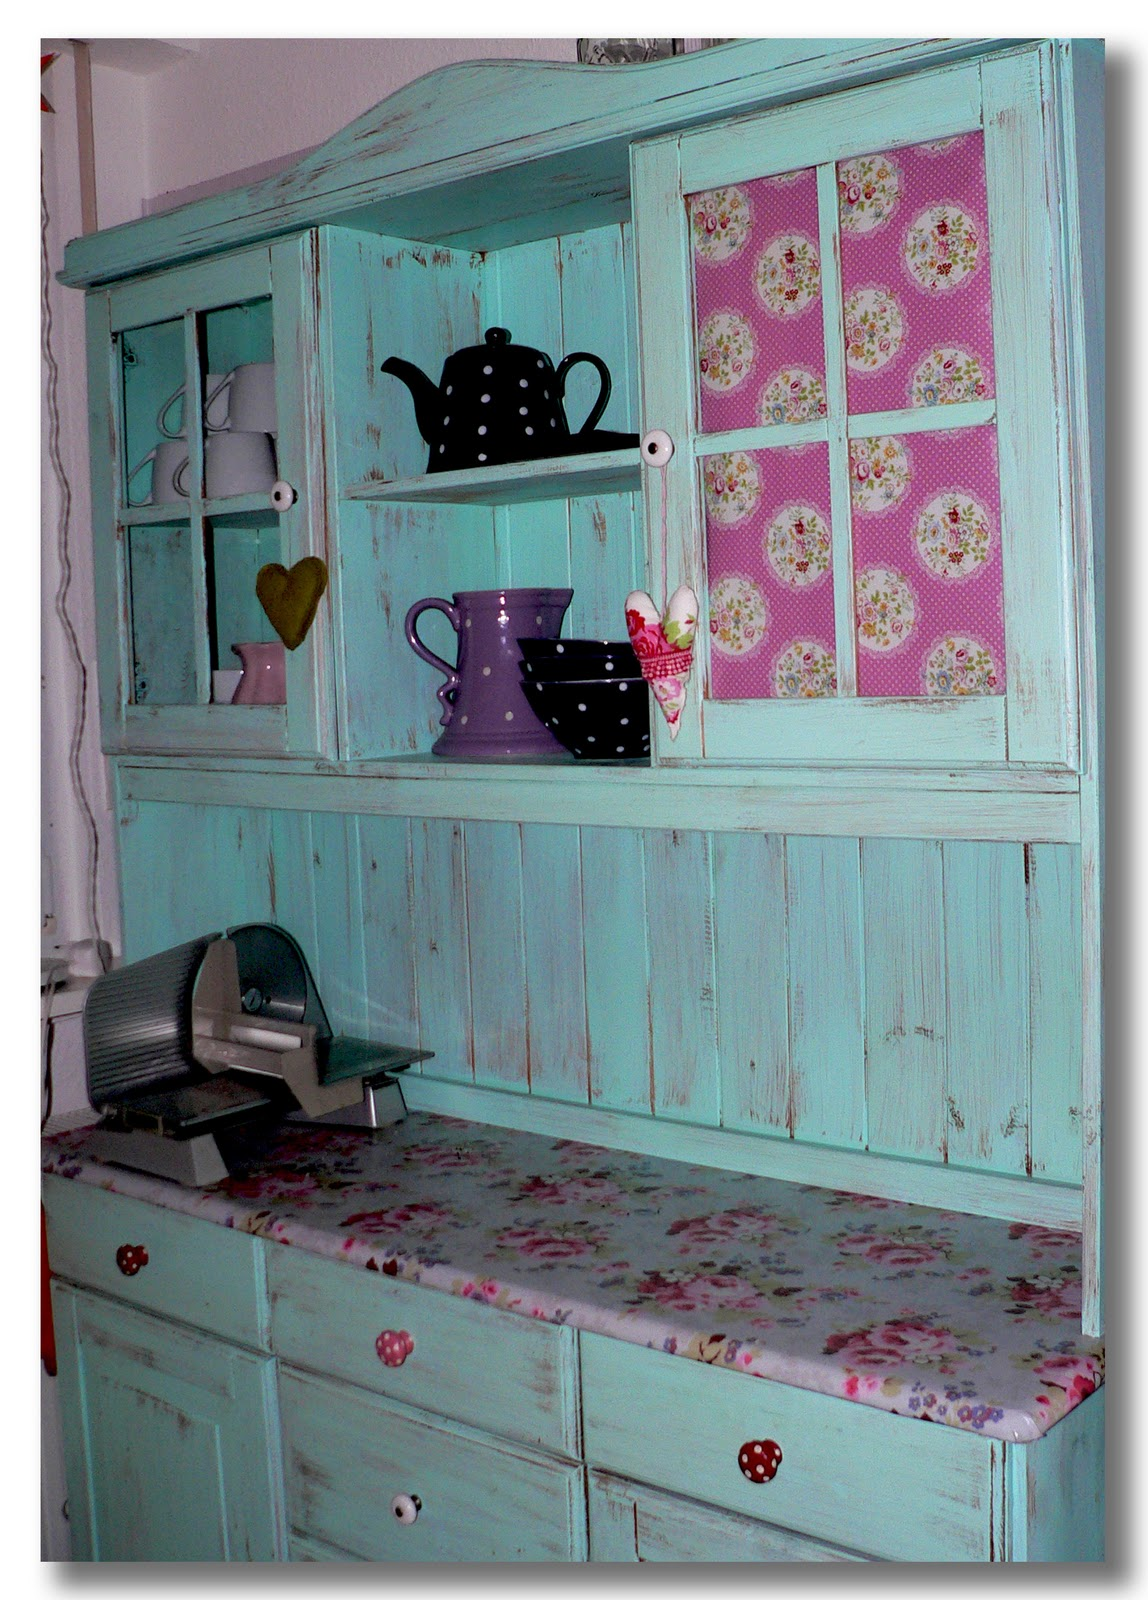 zauberheim cath kidston wachstuch f r mein k chenbuffet. Black Bedroom Furniture Sets. Home Design Ideas